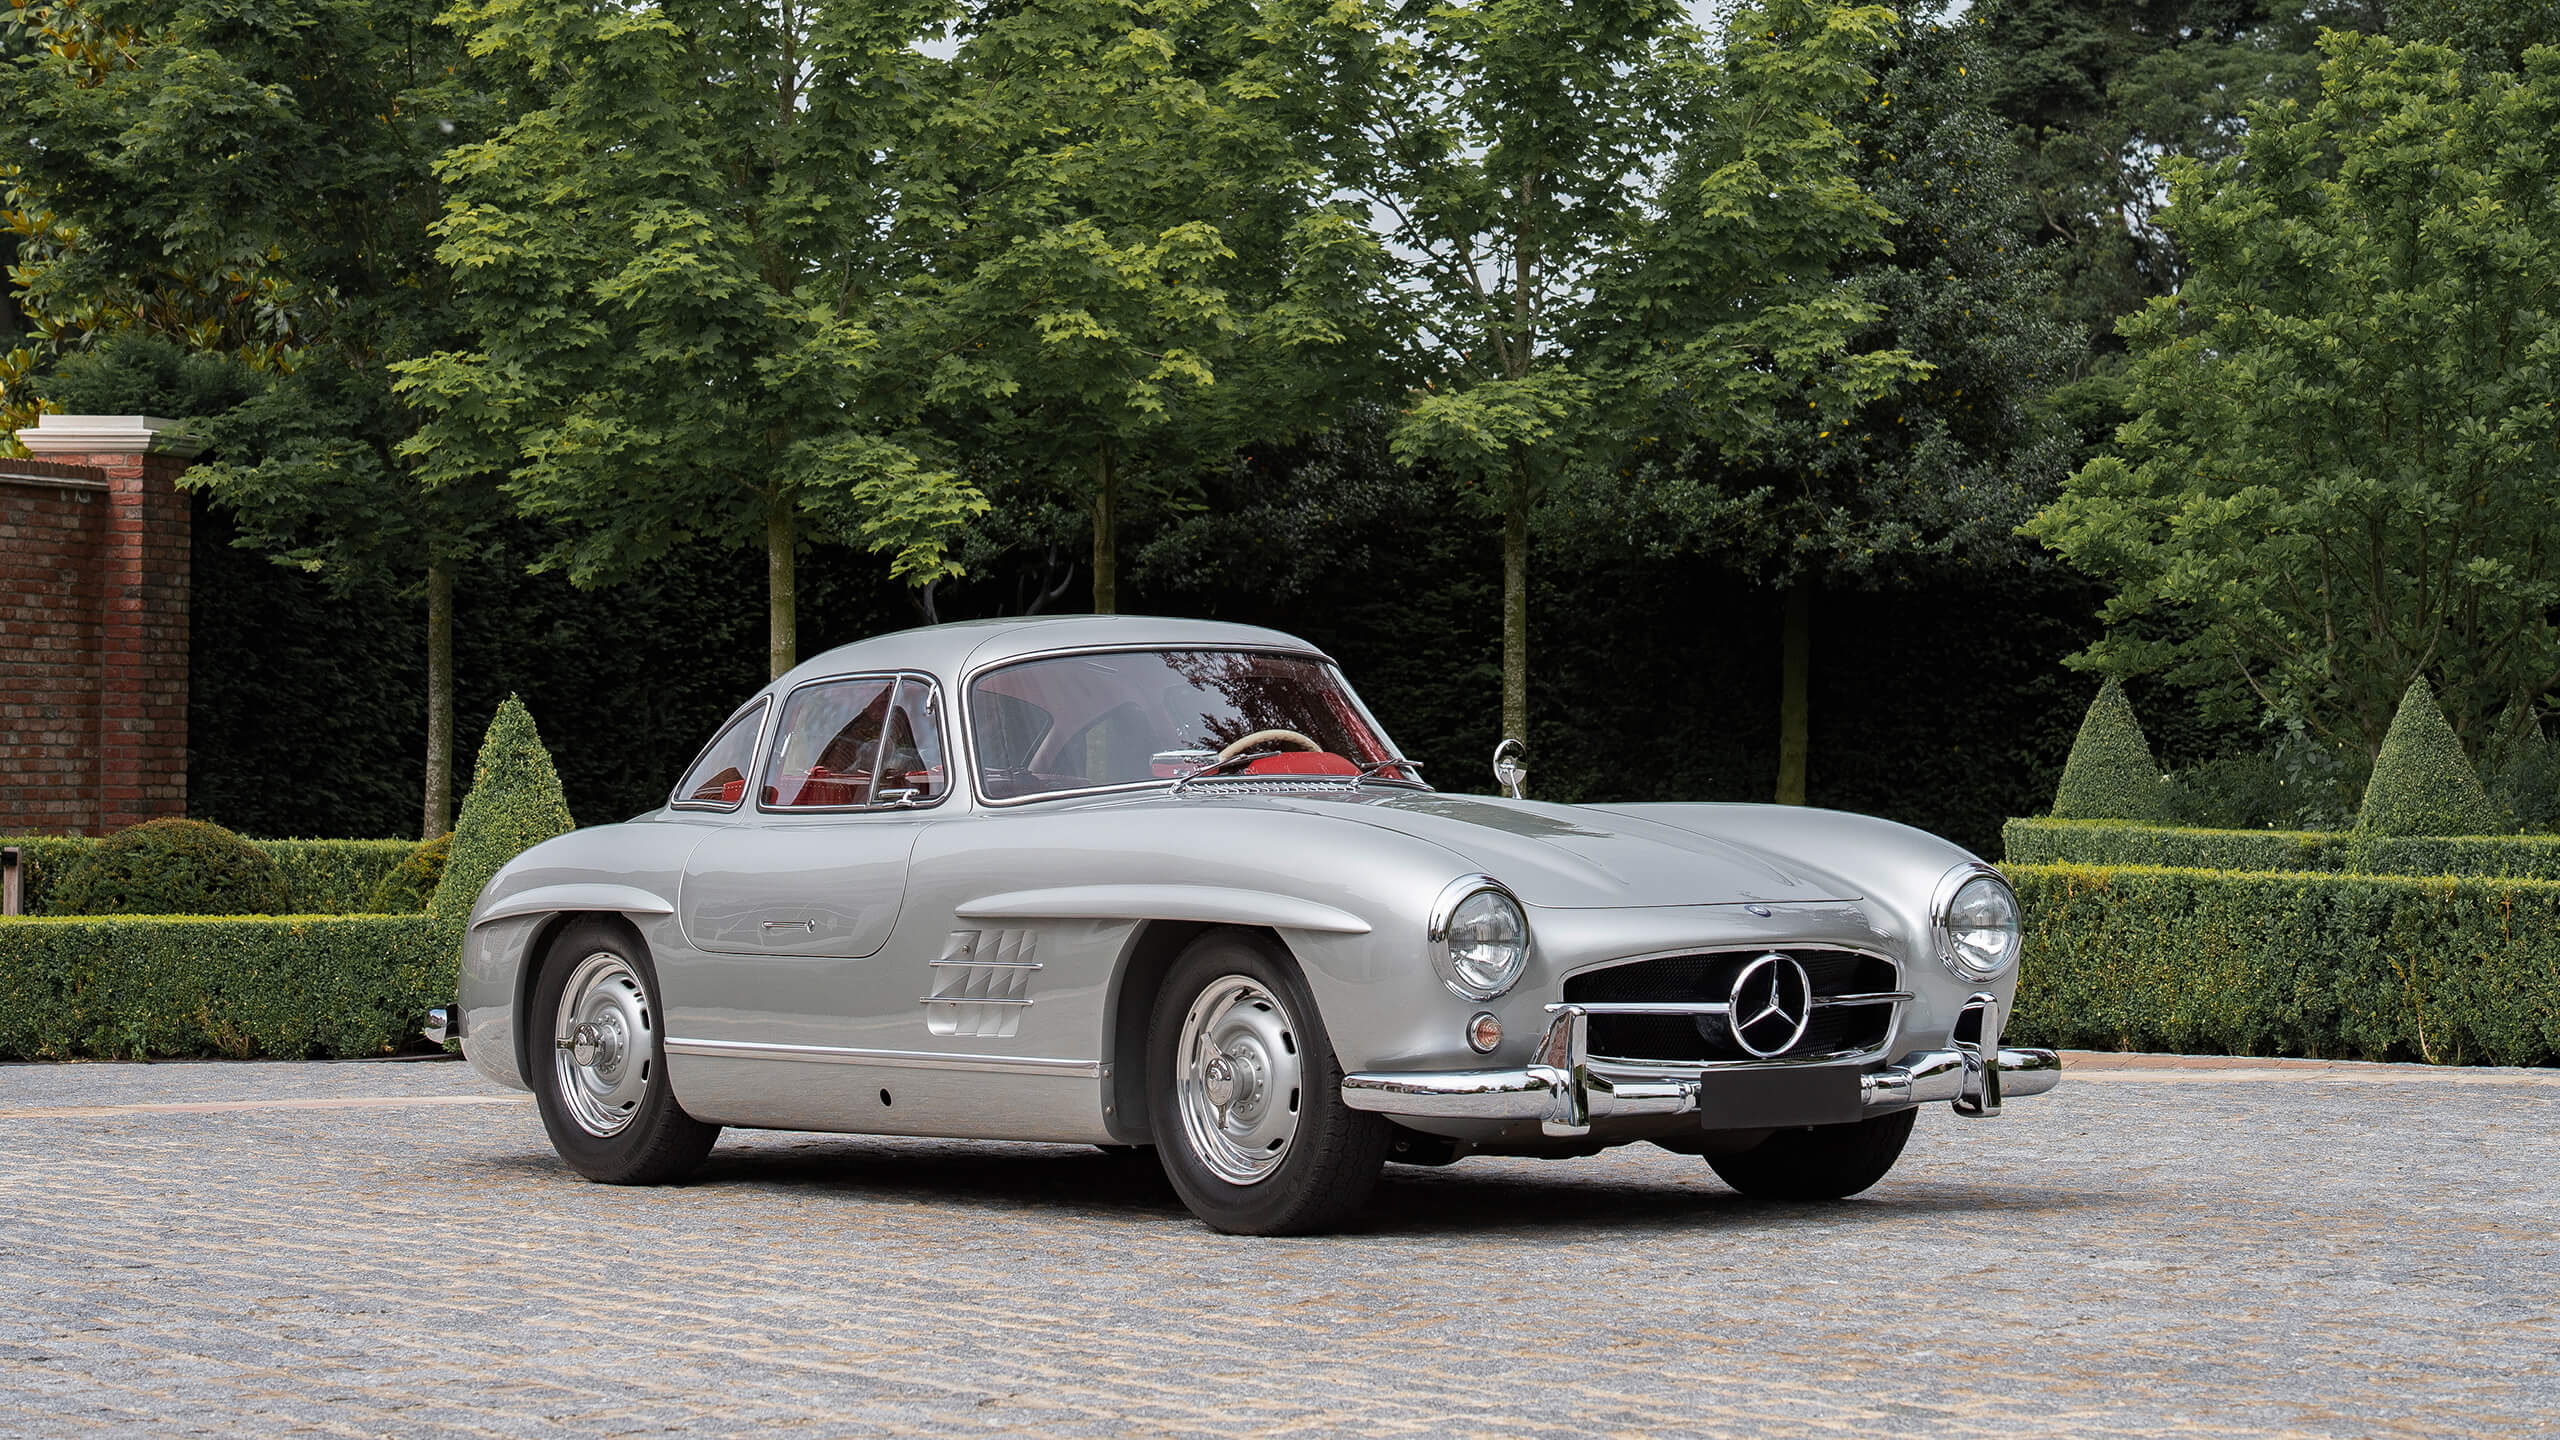 Style guru Stephen Bayley talks about the Mercedes-Benz 300 SL